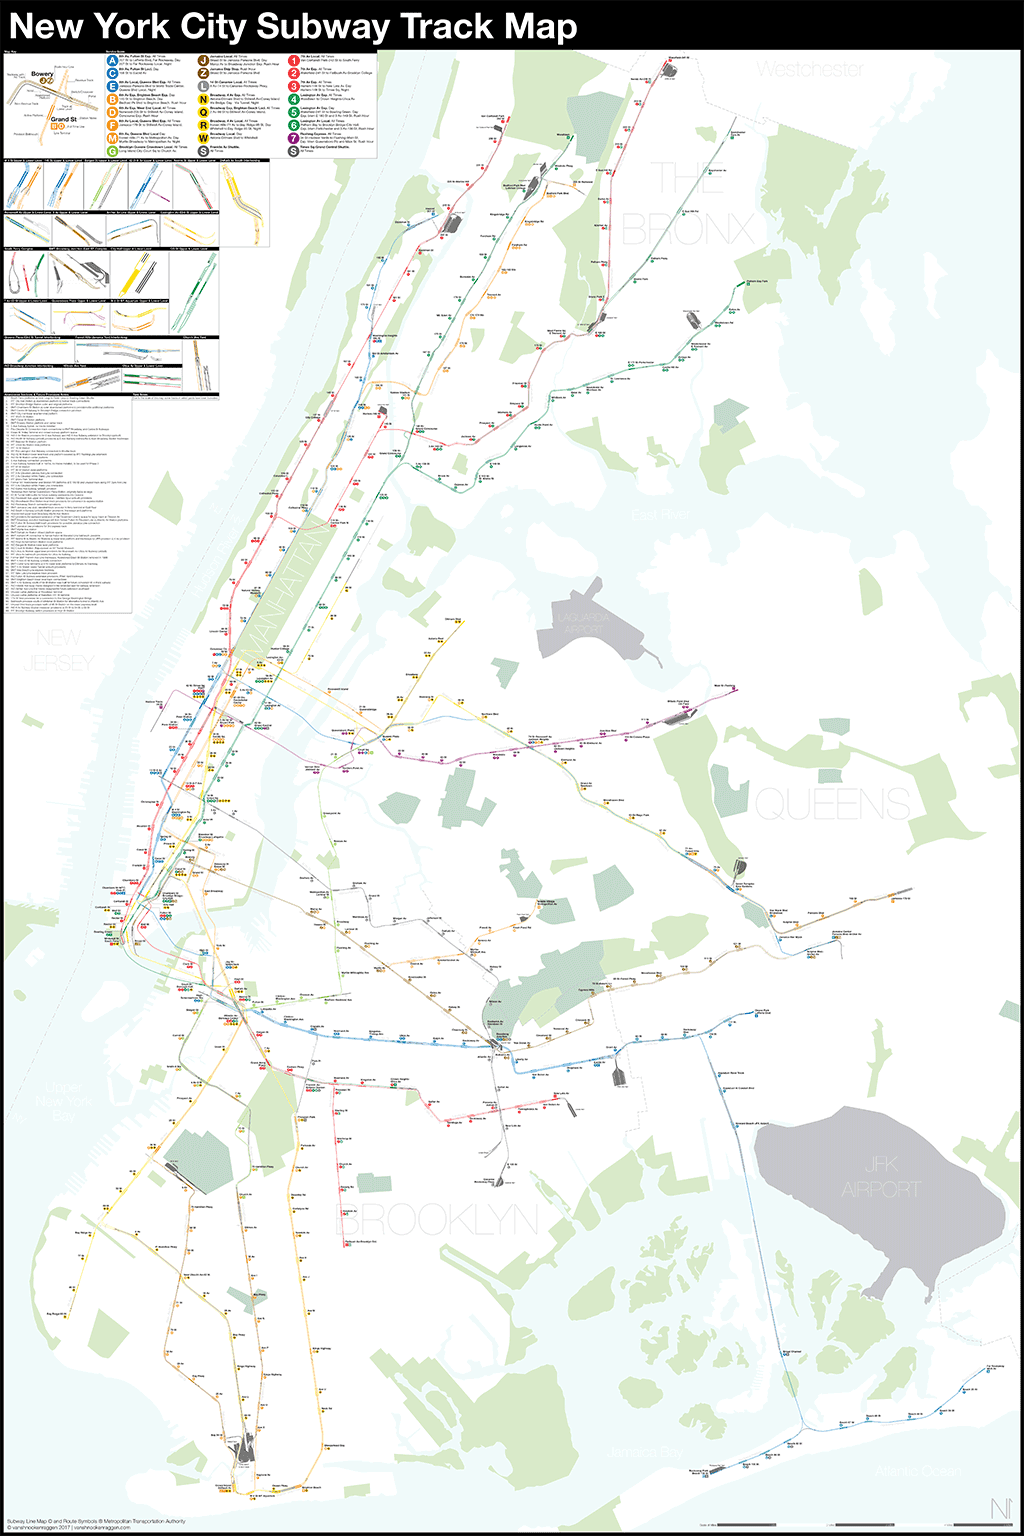 Download New York Subway Map.A Complete And Geographically Accurate Nyc Subway Track Map